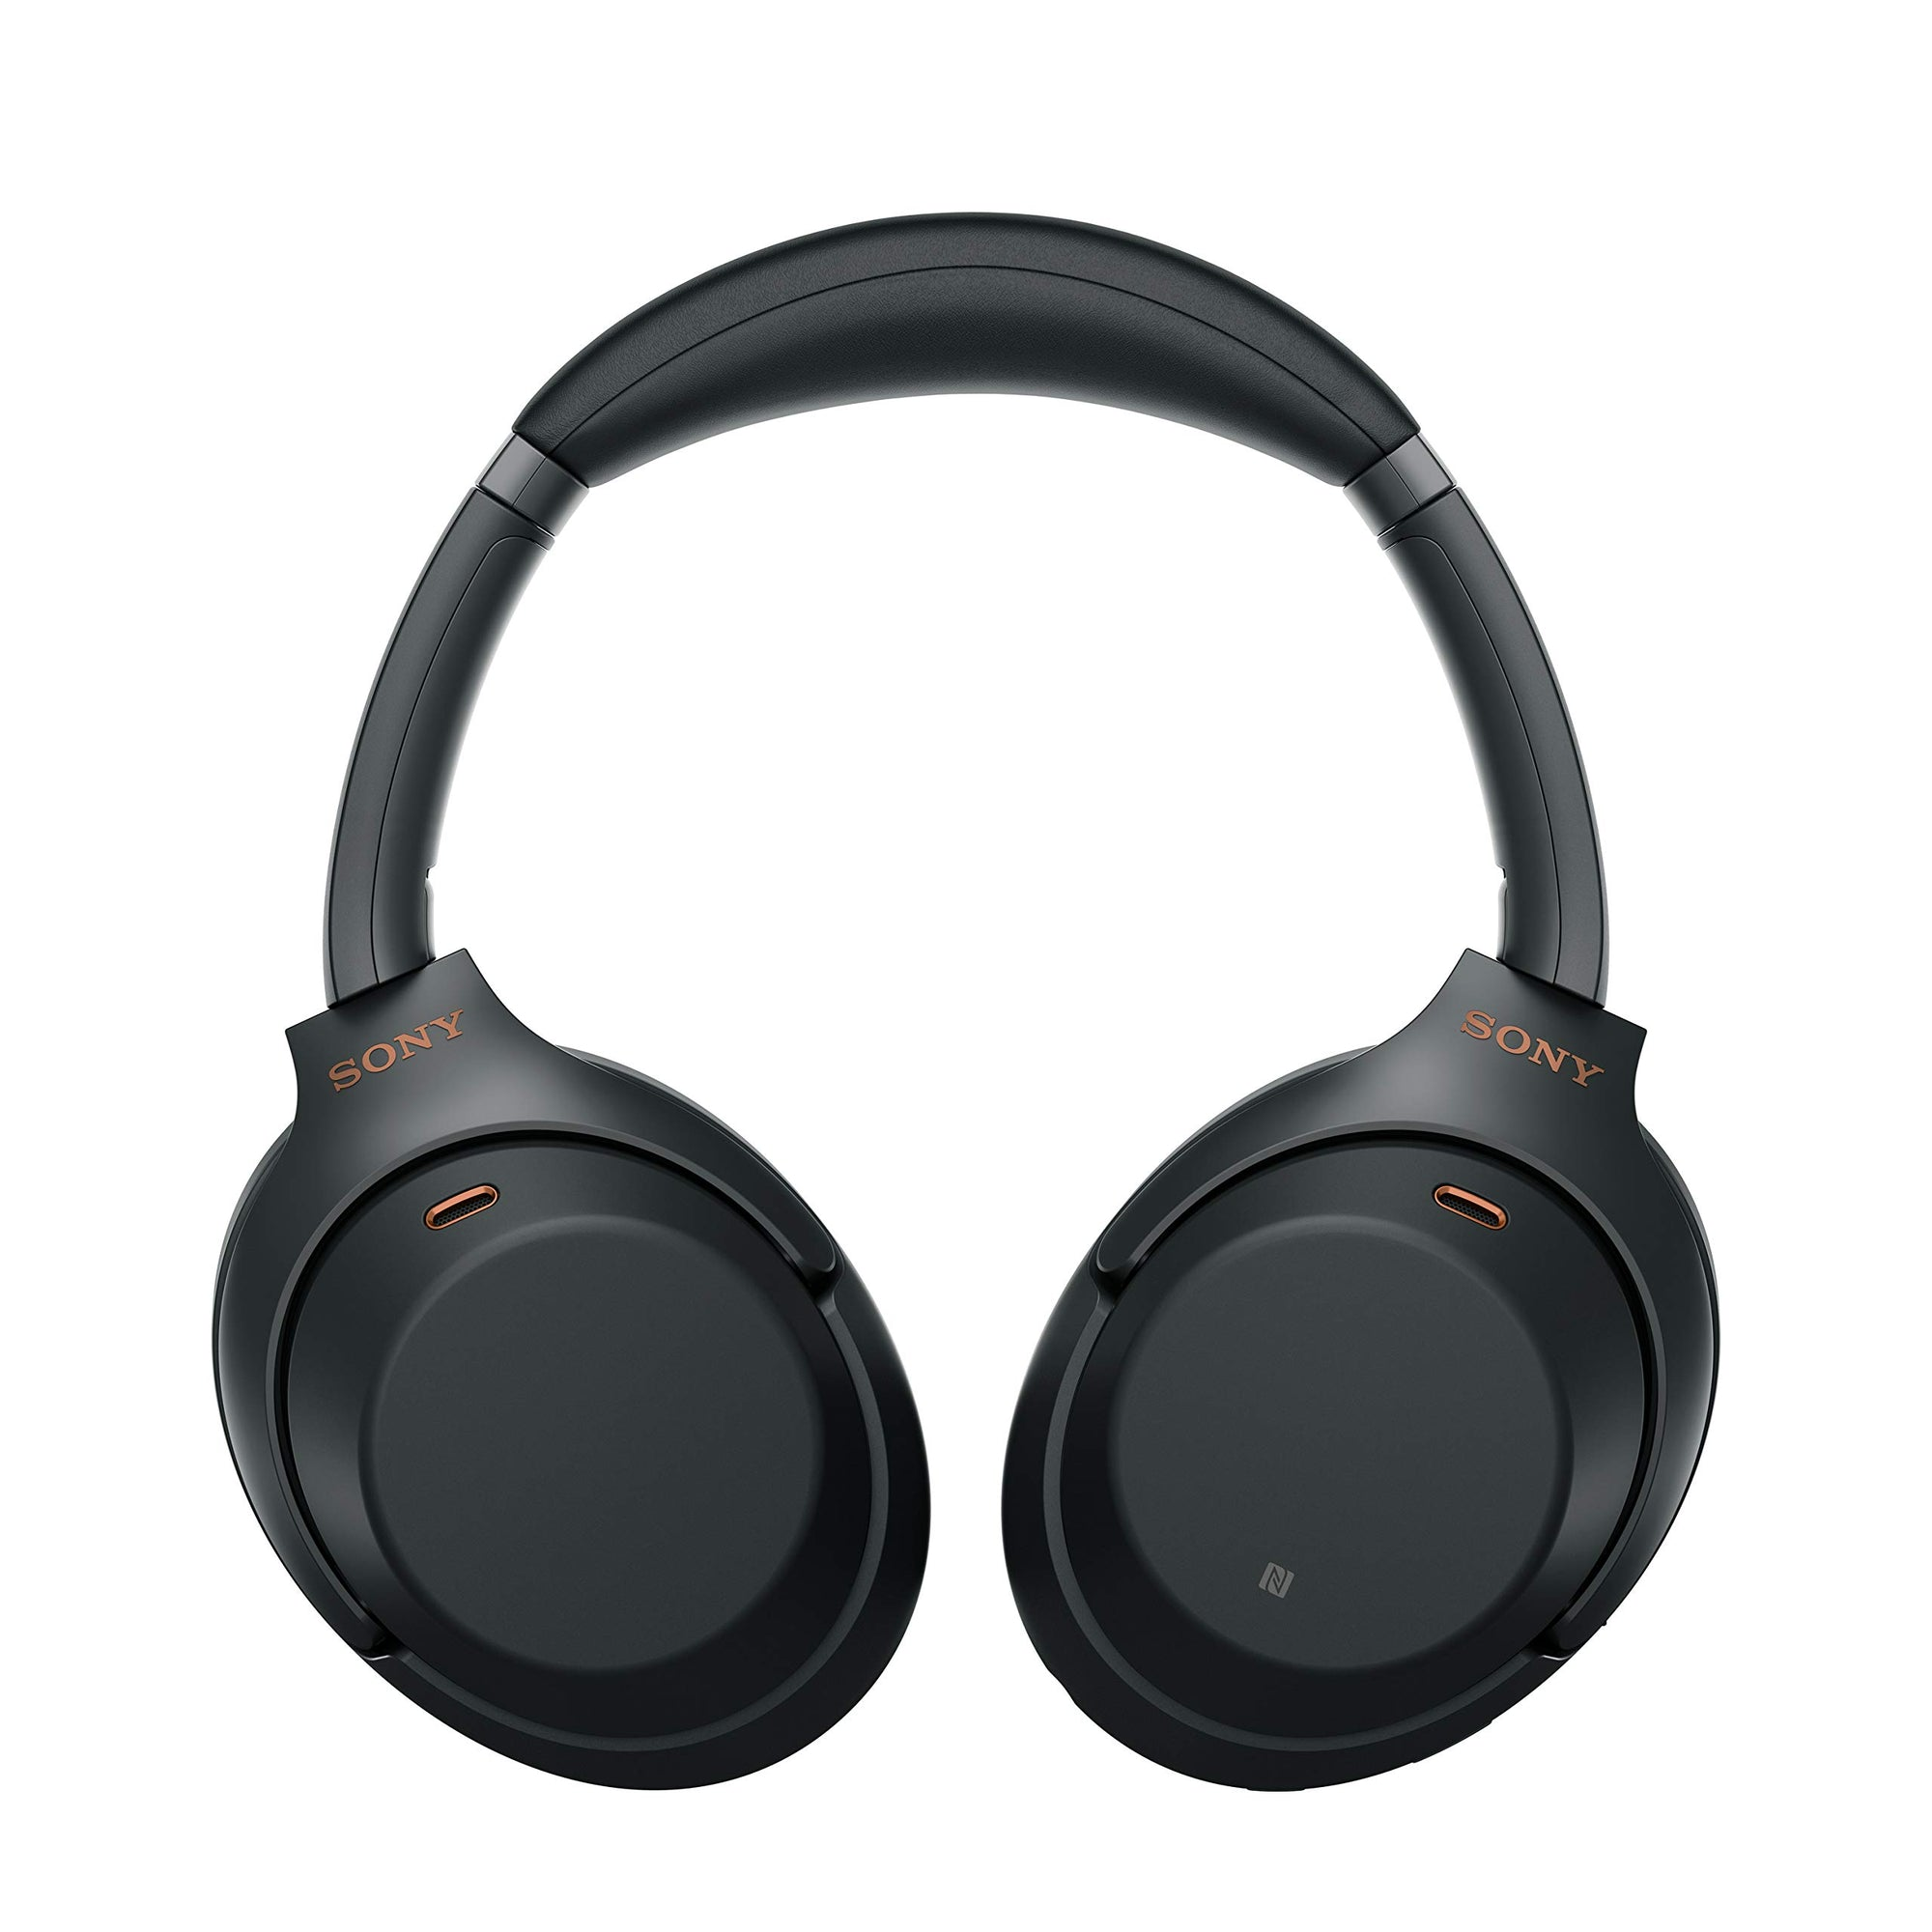 WH-1000XM3 Wireless Noise canceling Stereo Headset